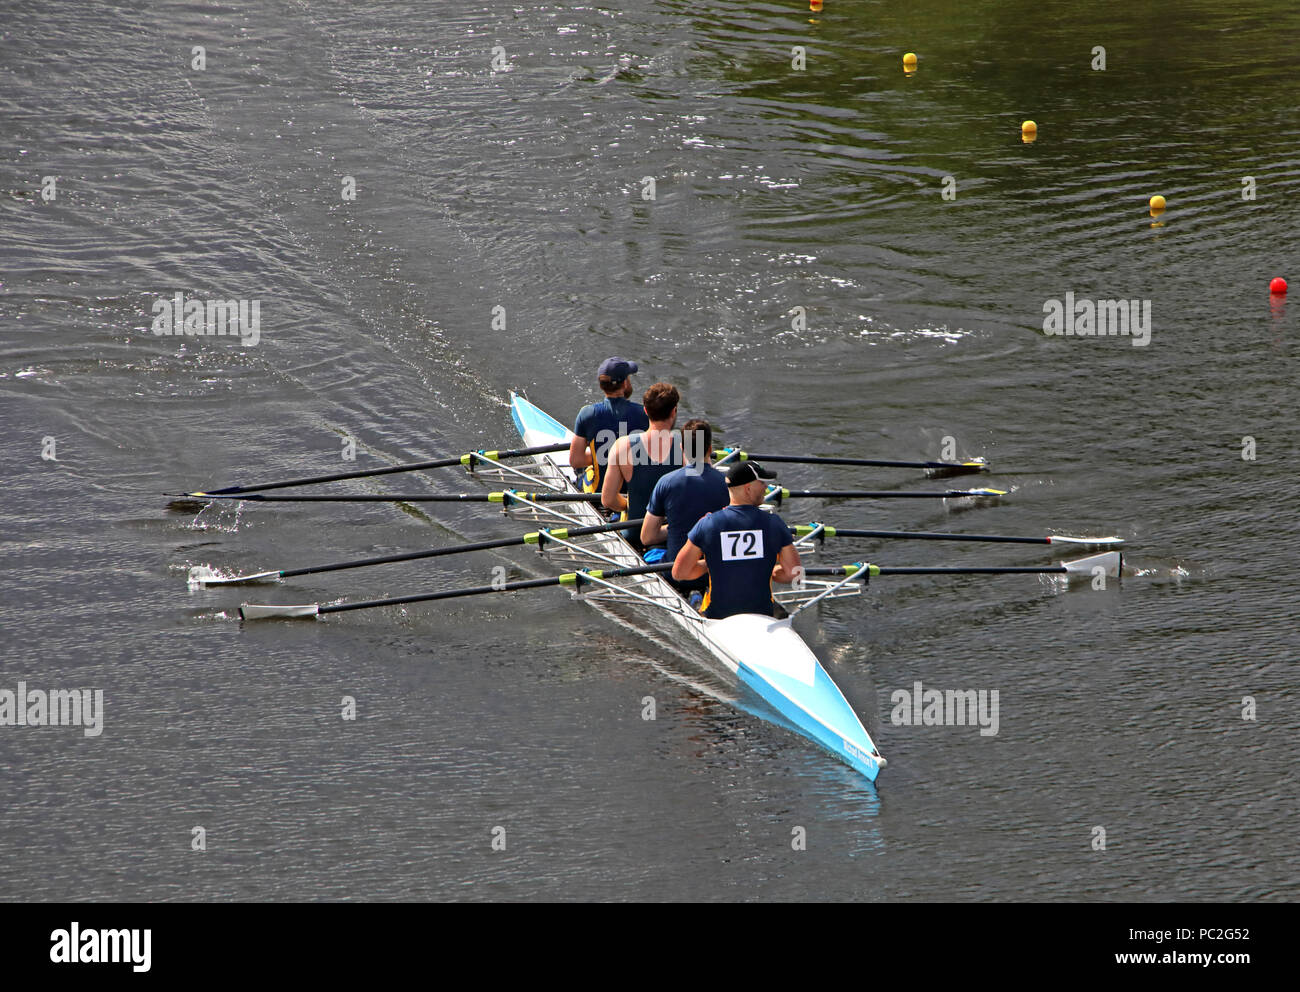 Lancaster Rowing Club team, Men coxless at Warrington Rowing Club 2018 Summer regatta, Howley lane, Mersey River, Cheshire, North West England, UK - Stock Image